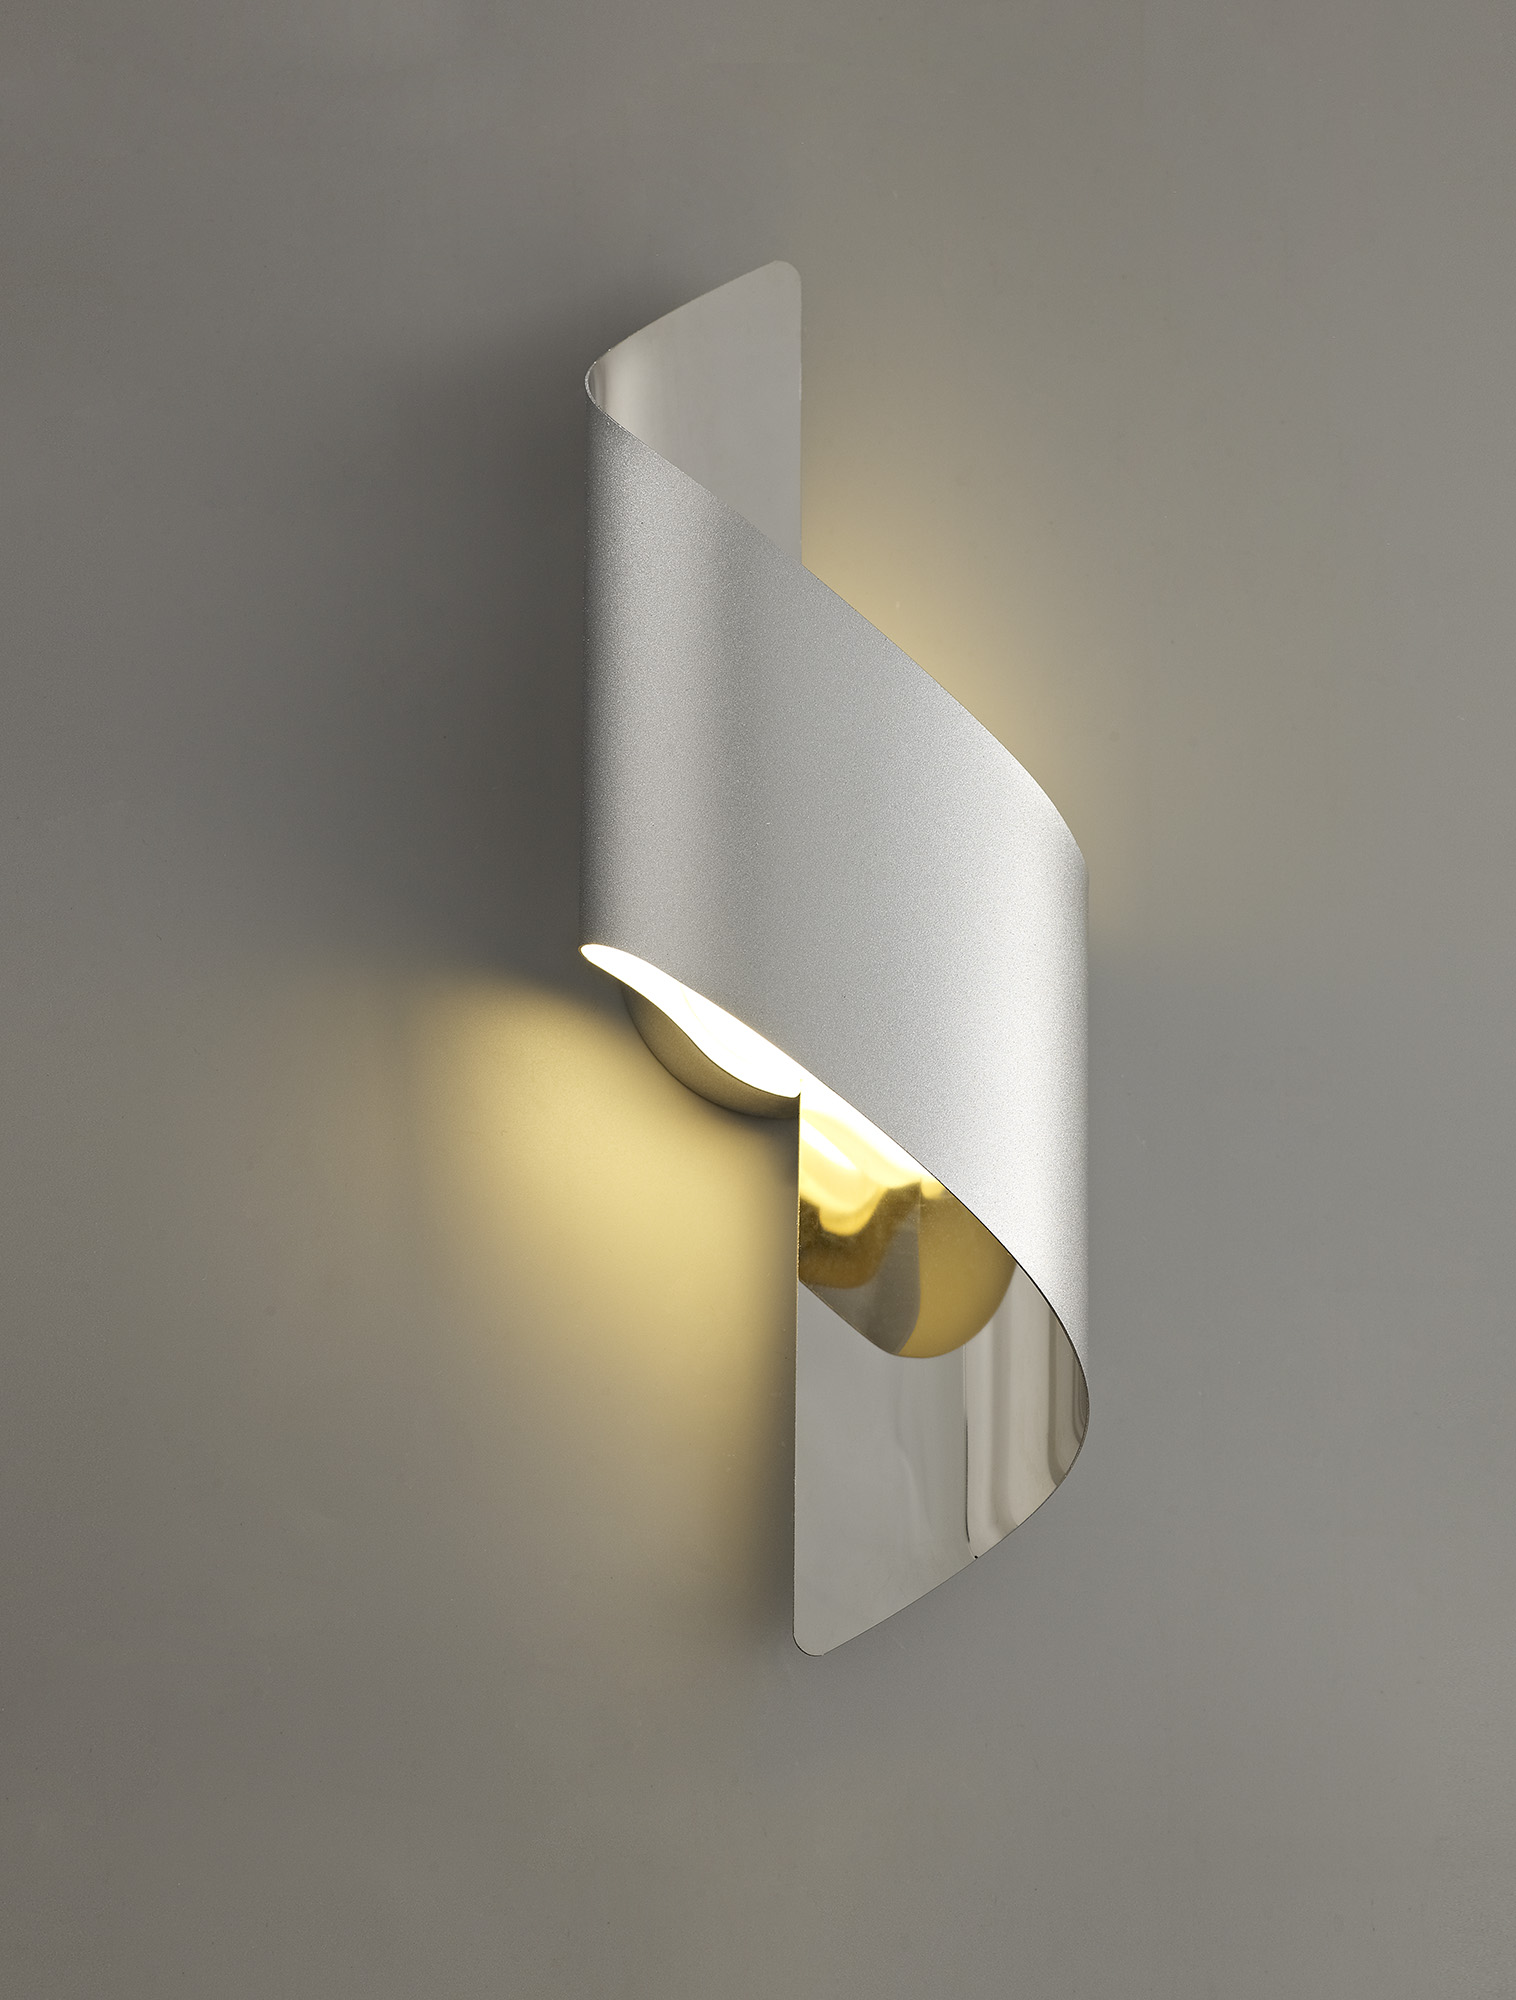 Wall Lamp Small, 1 x 8W LED, 3000K, 640lm, 3yrs Warranty